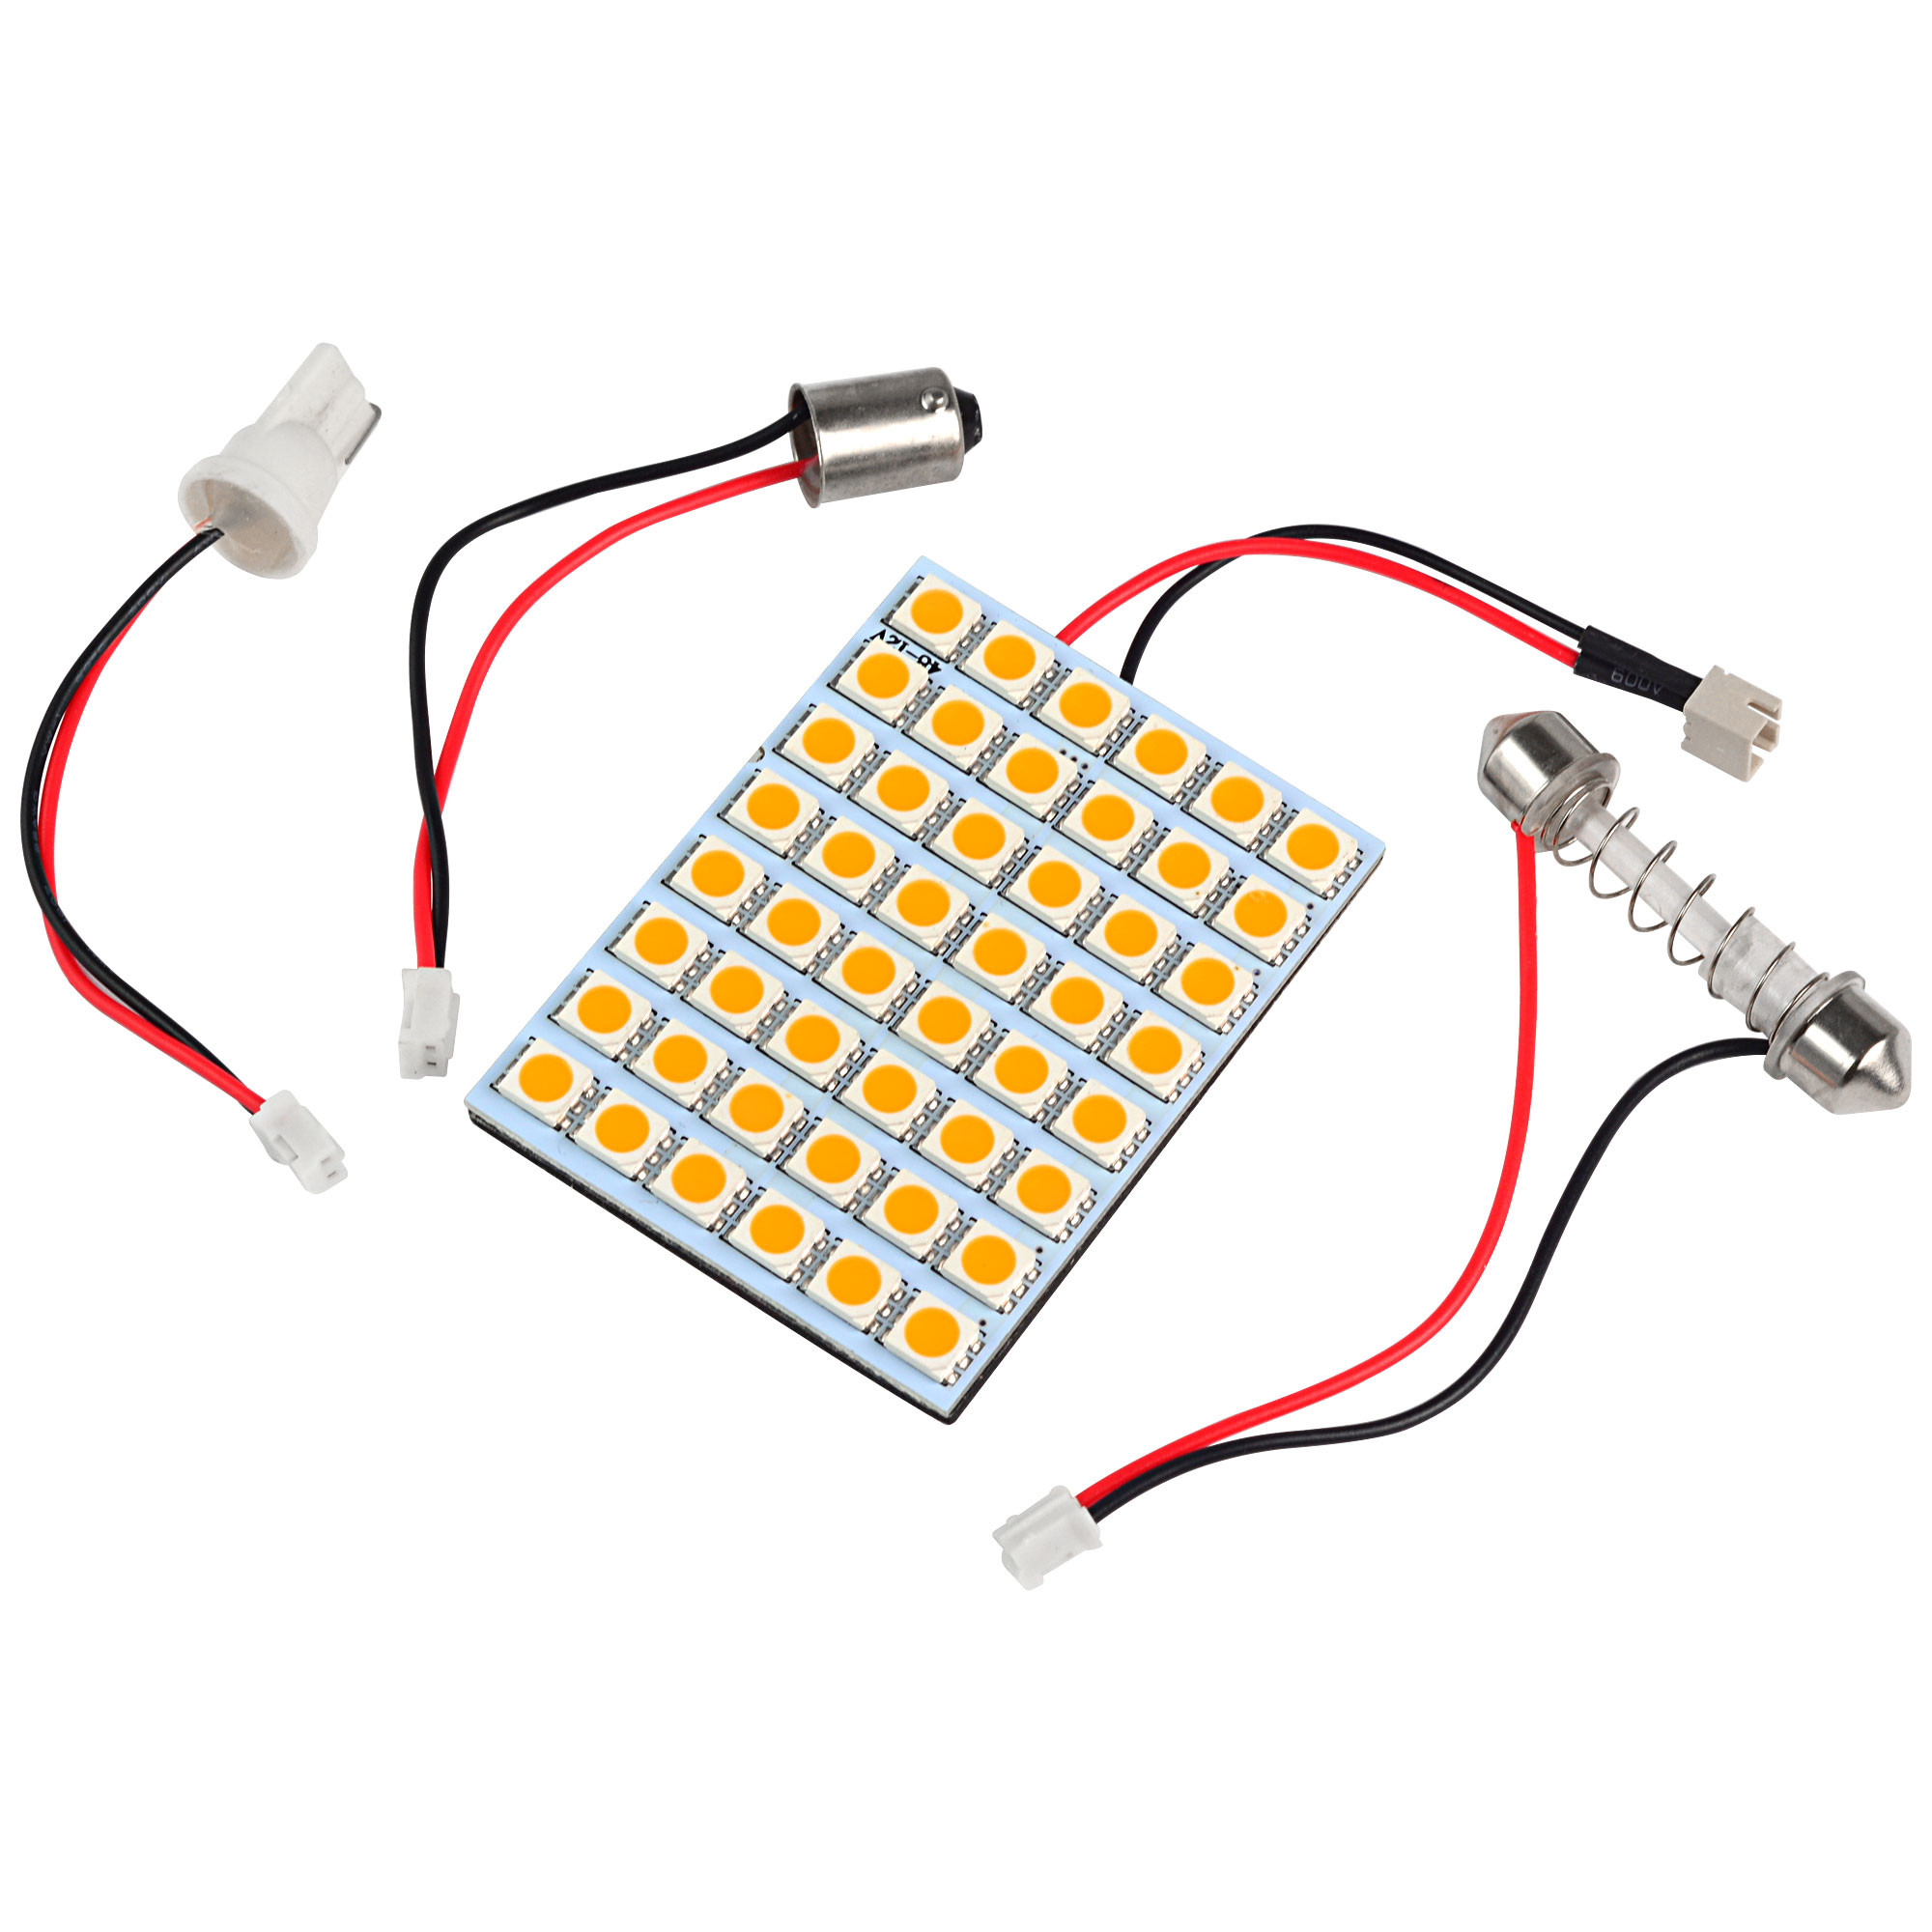 MENGS® T10 BA9S SV8.5 LED Car Light with 3 Adapters 48x 5050 SMD LED Bulb Lamp DC 12V In Cool White